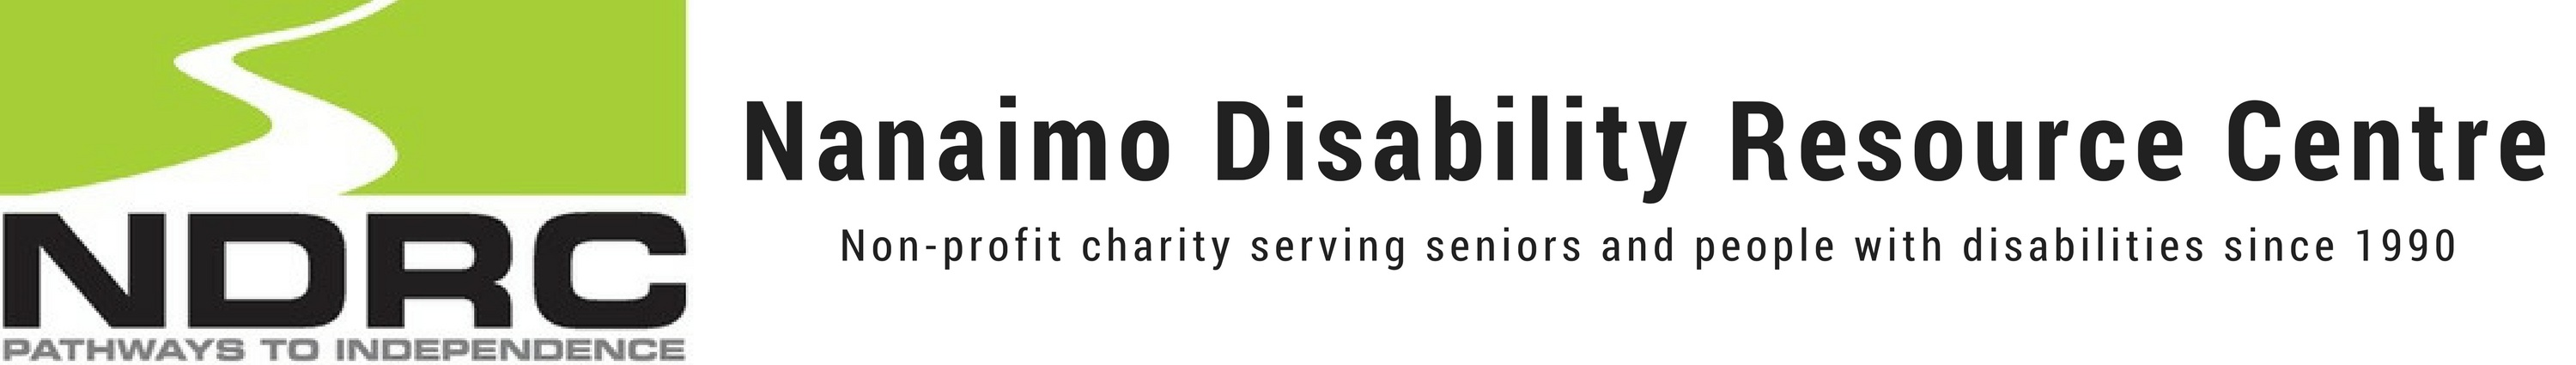 """A white road on a green background with """"NDRC"""" below in black and """"Pathways to independence"""" in grey below that. To the right is """"Nanaimo Disability Resource Centre"""" with """"Non-proft charity serving seniors and people with disabilities since 1990"""""""